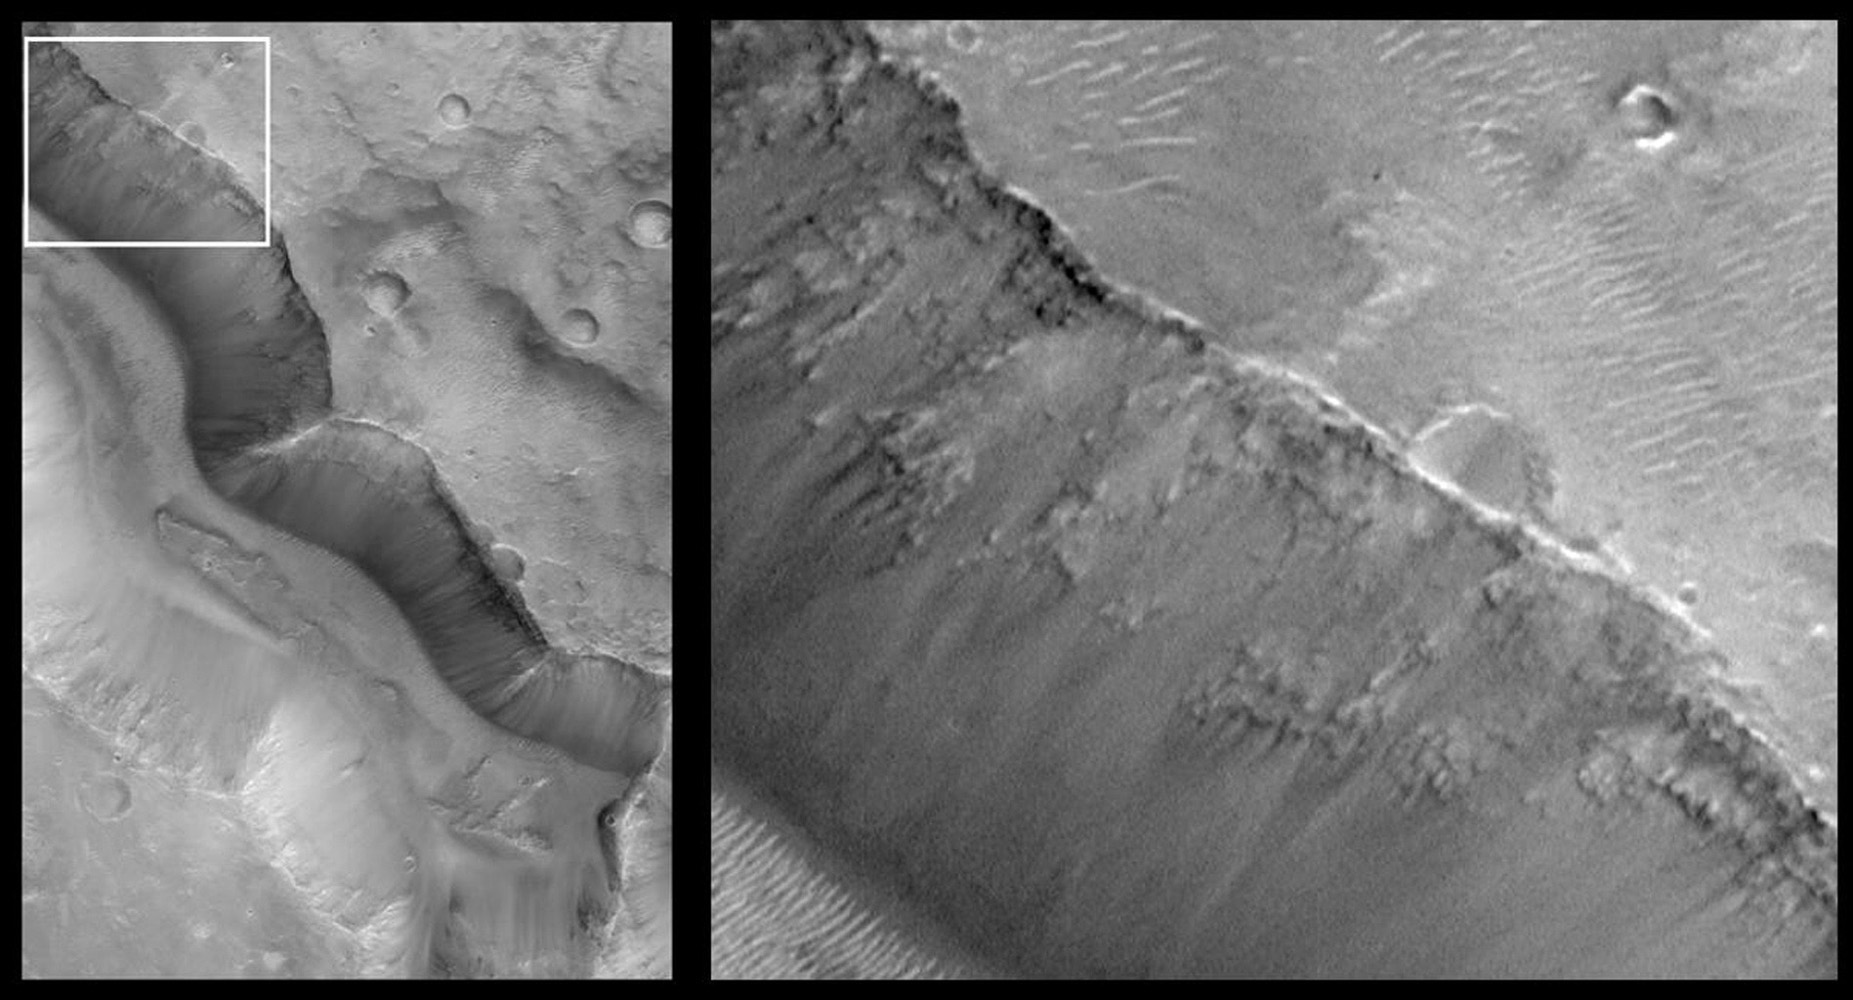 NASA's Mars Global Surveyor shows the deep, steep-walled valley in Tagus Vallis in the martian southern hemisphere of Mars. Layered rock can be seen, exposed in the upper slopes of the valley. Bright sand dunes are visible on the valley floor.